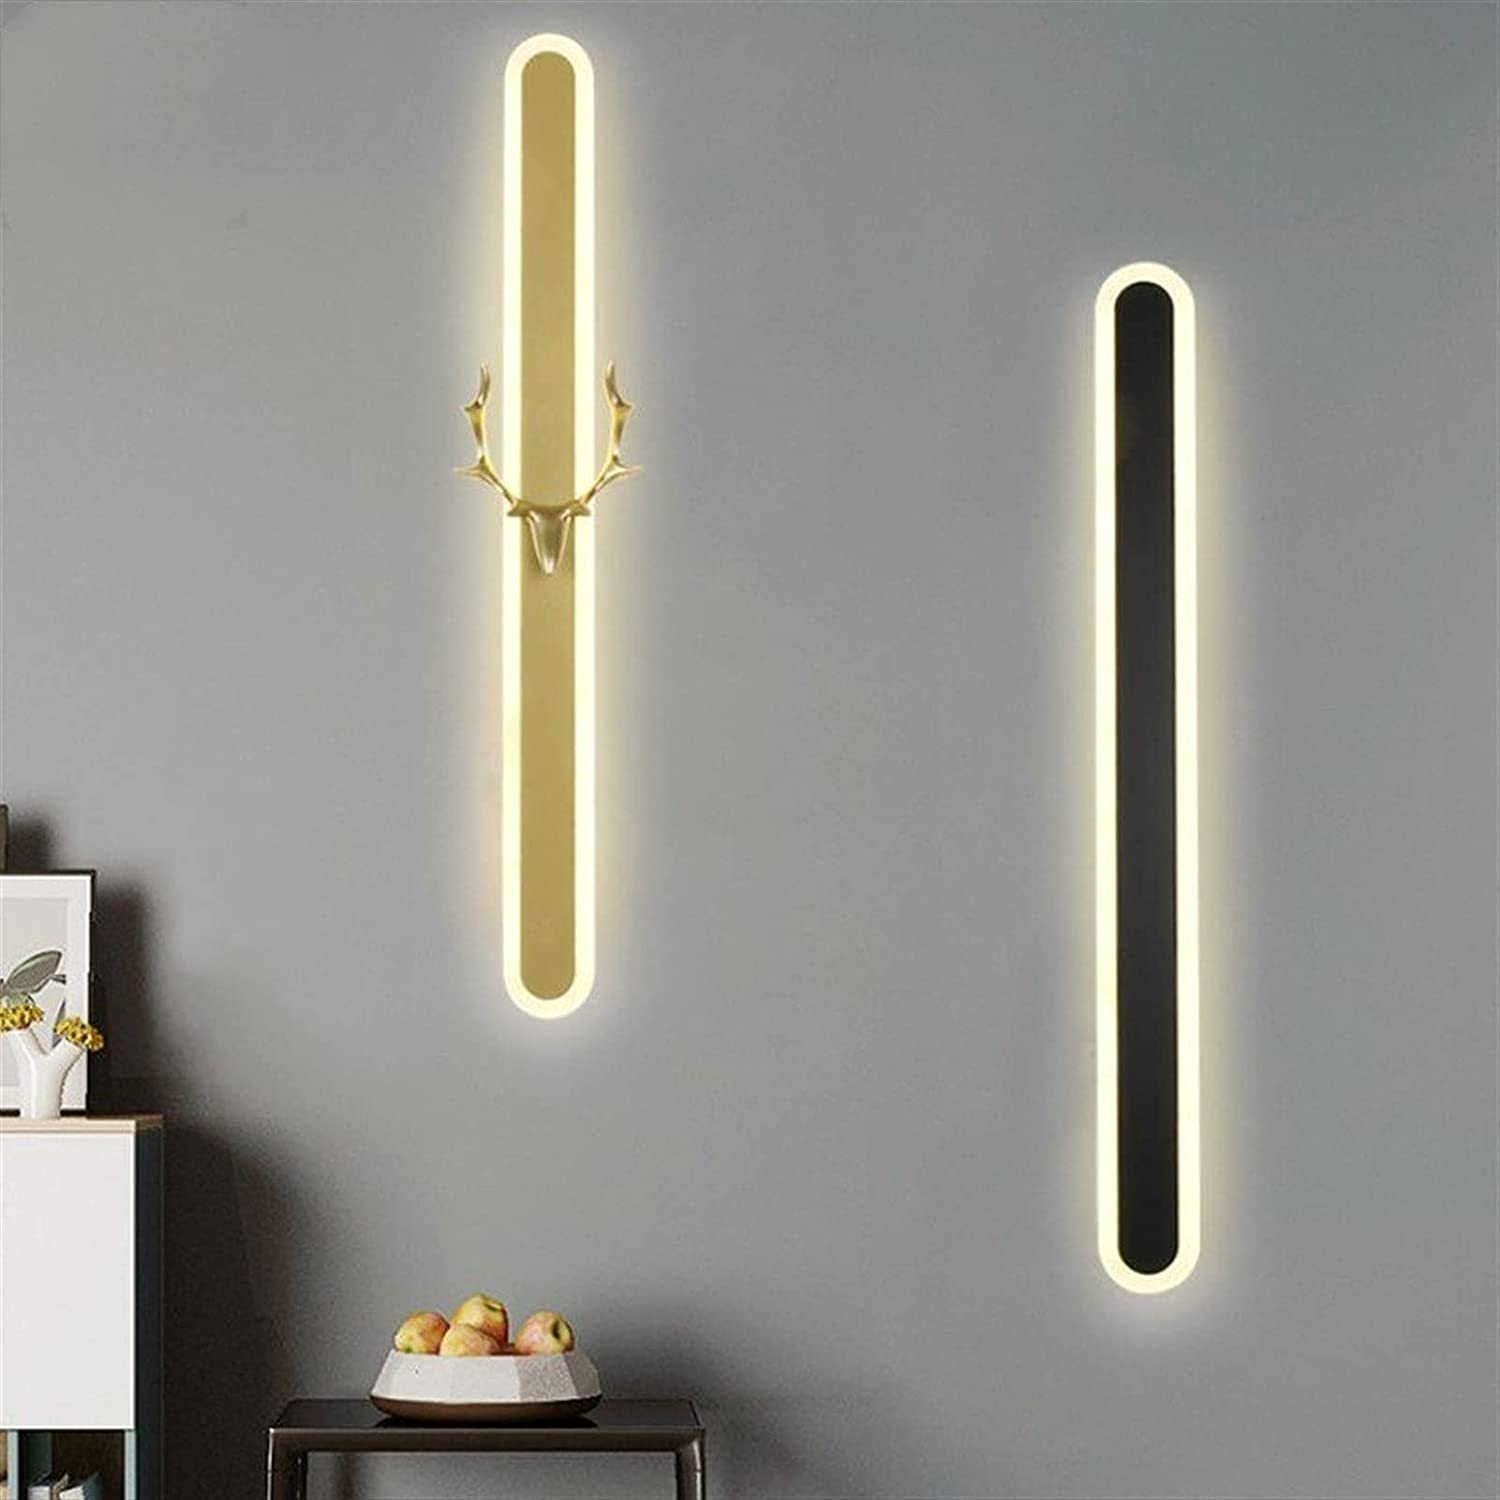 New arrival JSJJAUA Wall lamp 5% OFF Simple Bright Lamps Acrylic Dining Ro LED